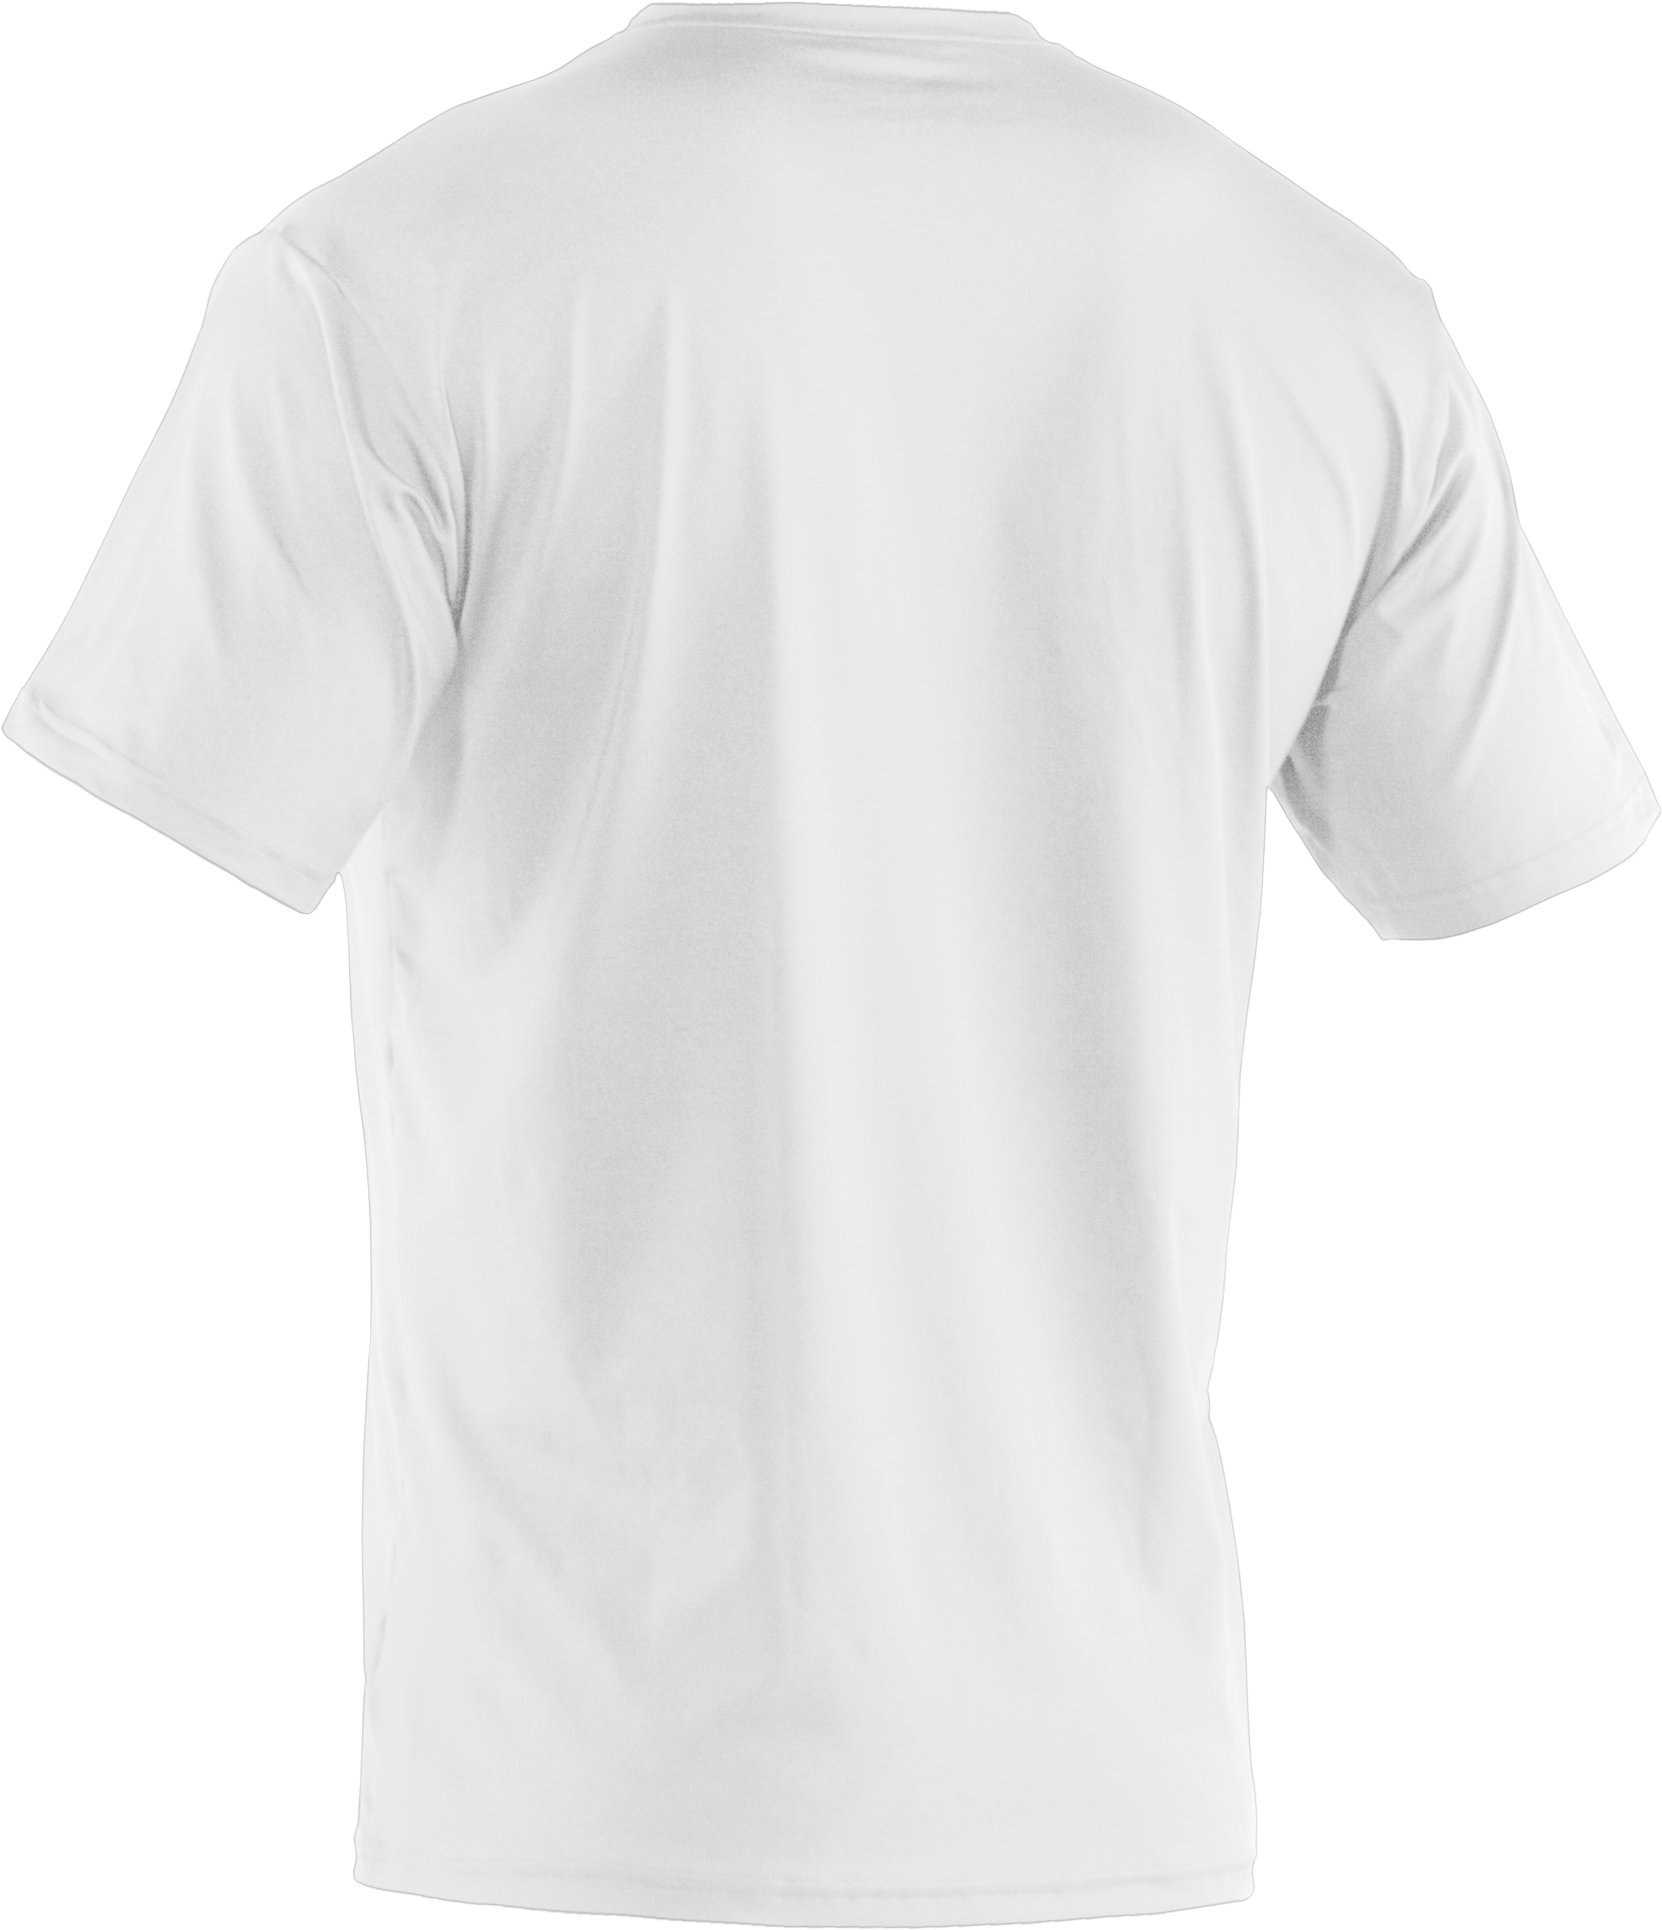 Men's The Original UA Fitted V-Neck Undershirt, White